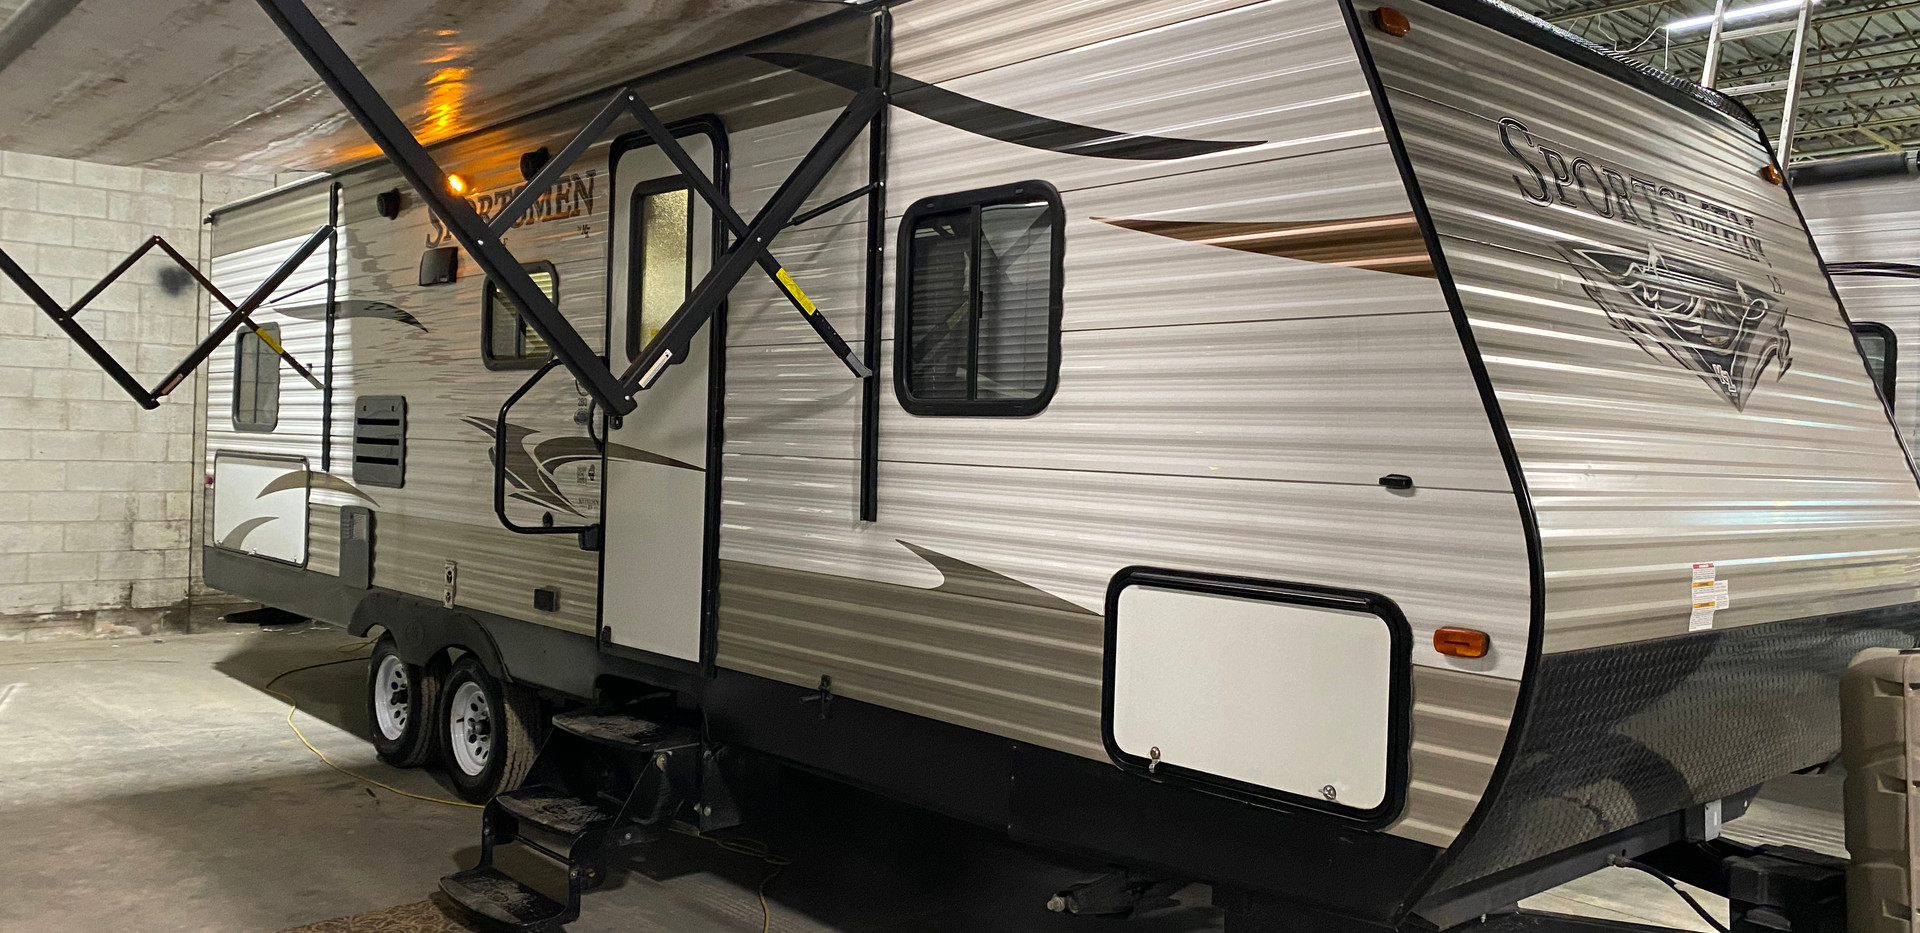 2016 KZ Sportsmen. The model number is 280. Camper is 28 feet long. Dry weight is 5500 pounds. Does have one slideout. Electric awning. Inside is very nice. Has bunkbeds in the rear. they are full size bunkbeds! Kitchen and living room is in the middle. Dinette and couch fold down into beds. Bedroom is up front. Sleeps 6-10. Does have a rebuilt title from tree limb damage to the very front. Priced at $14,500.